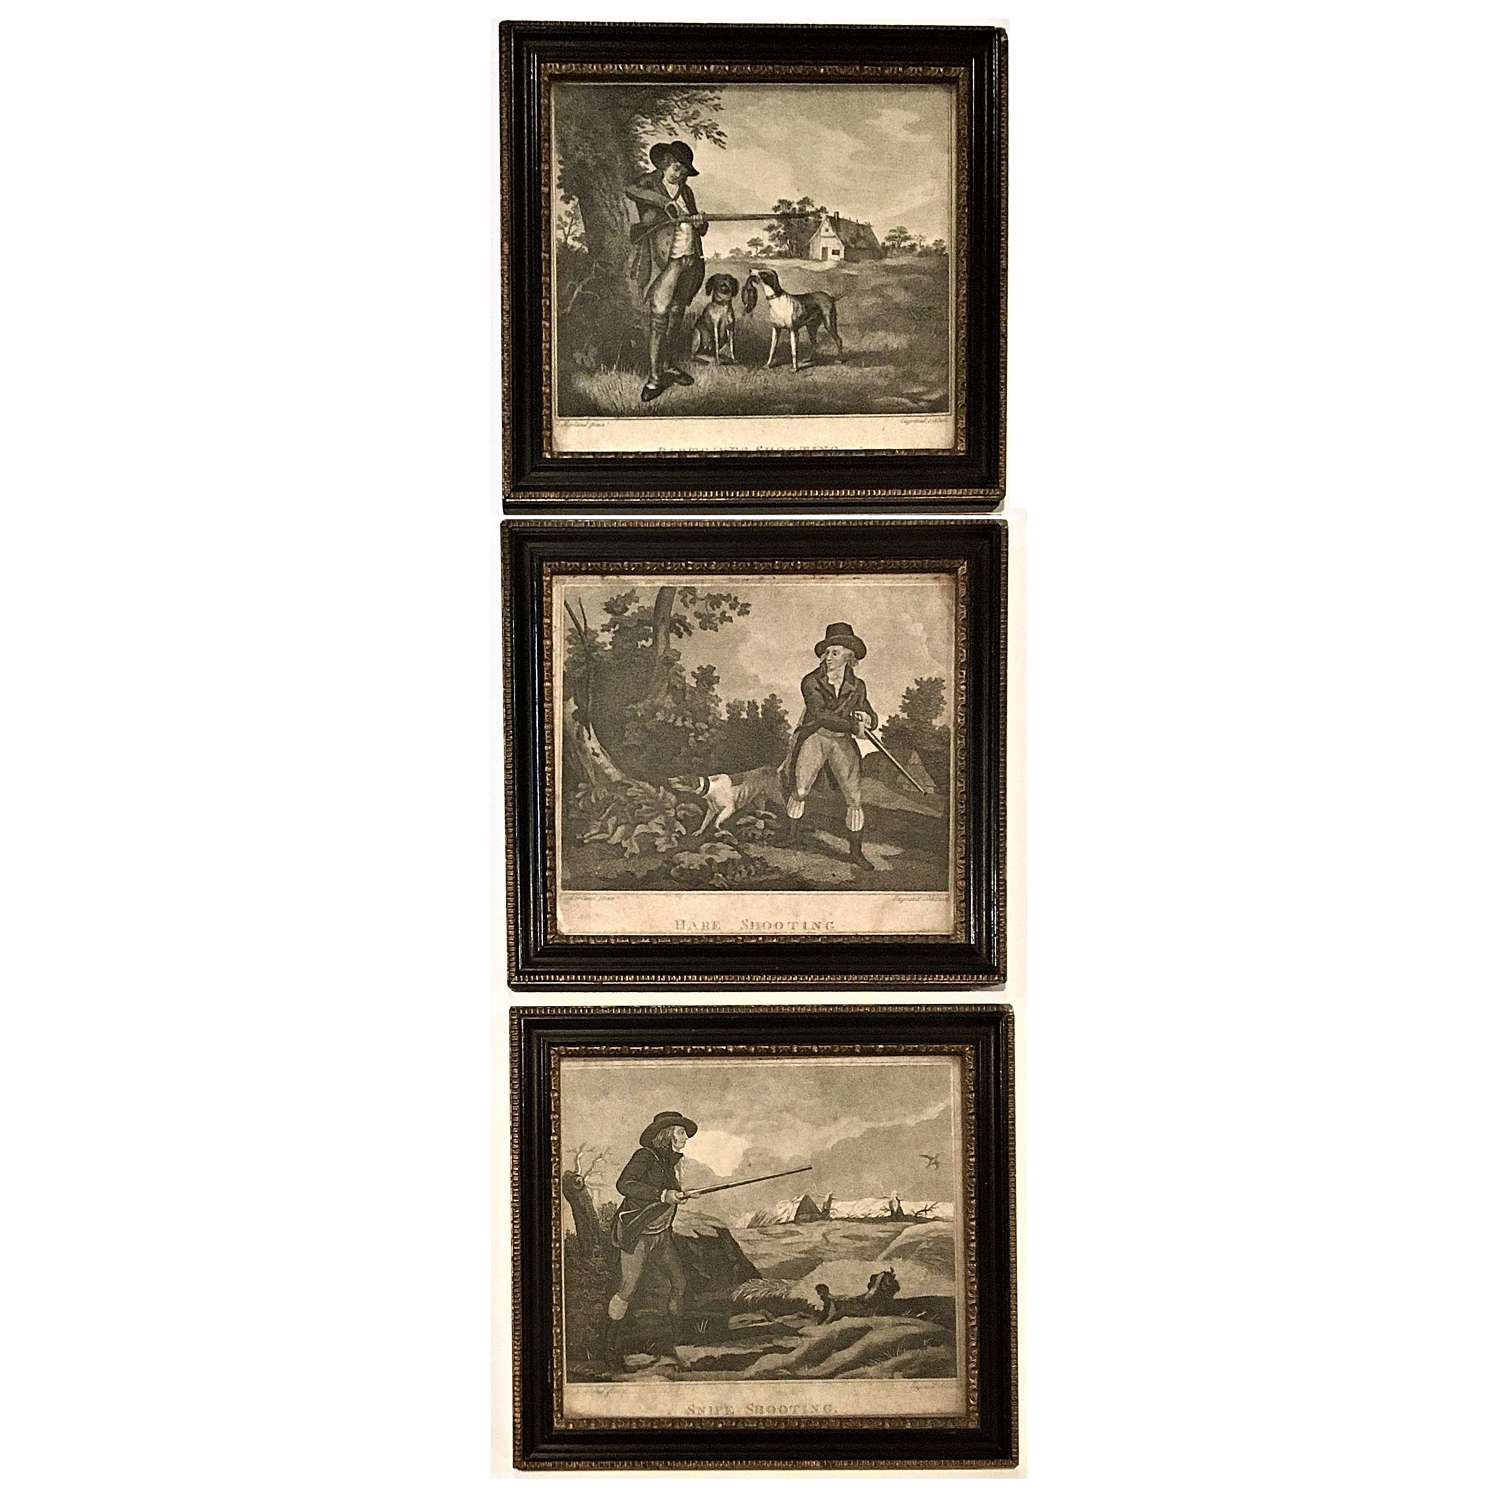 George Morland (1763-1804), A set of three prints with shooting scenes